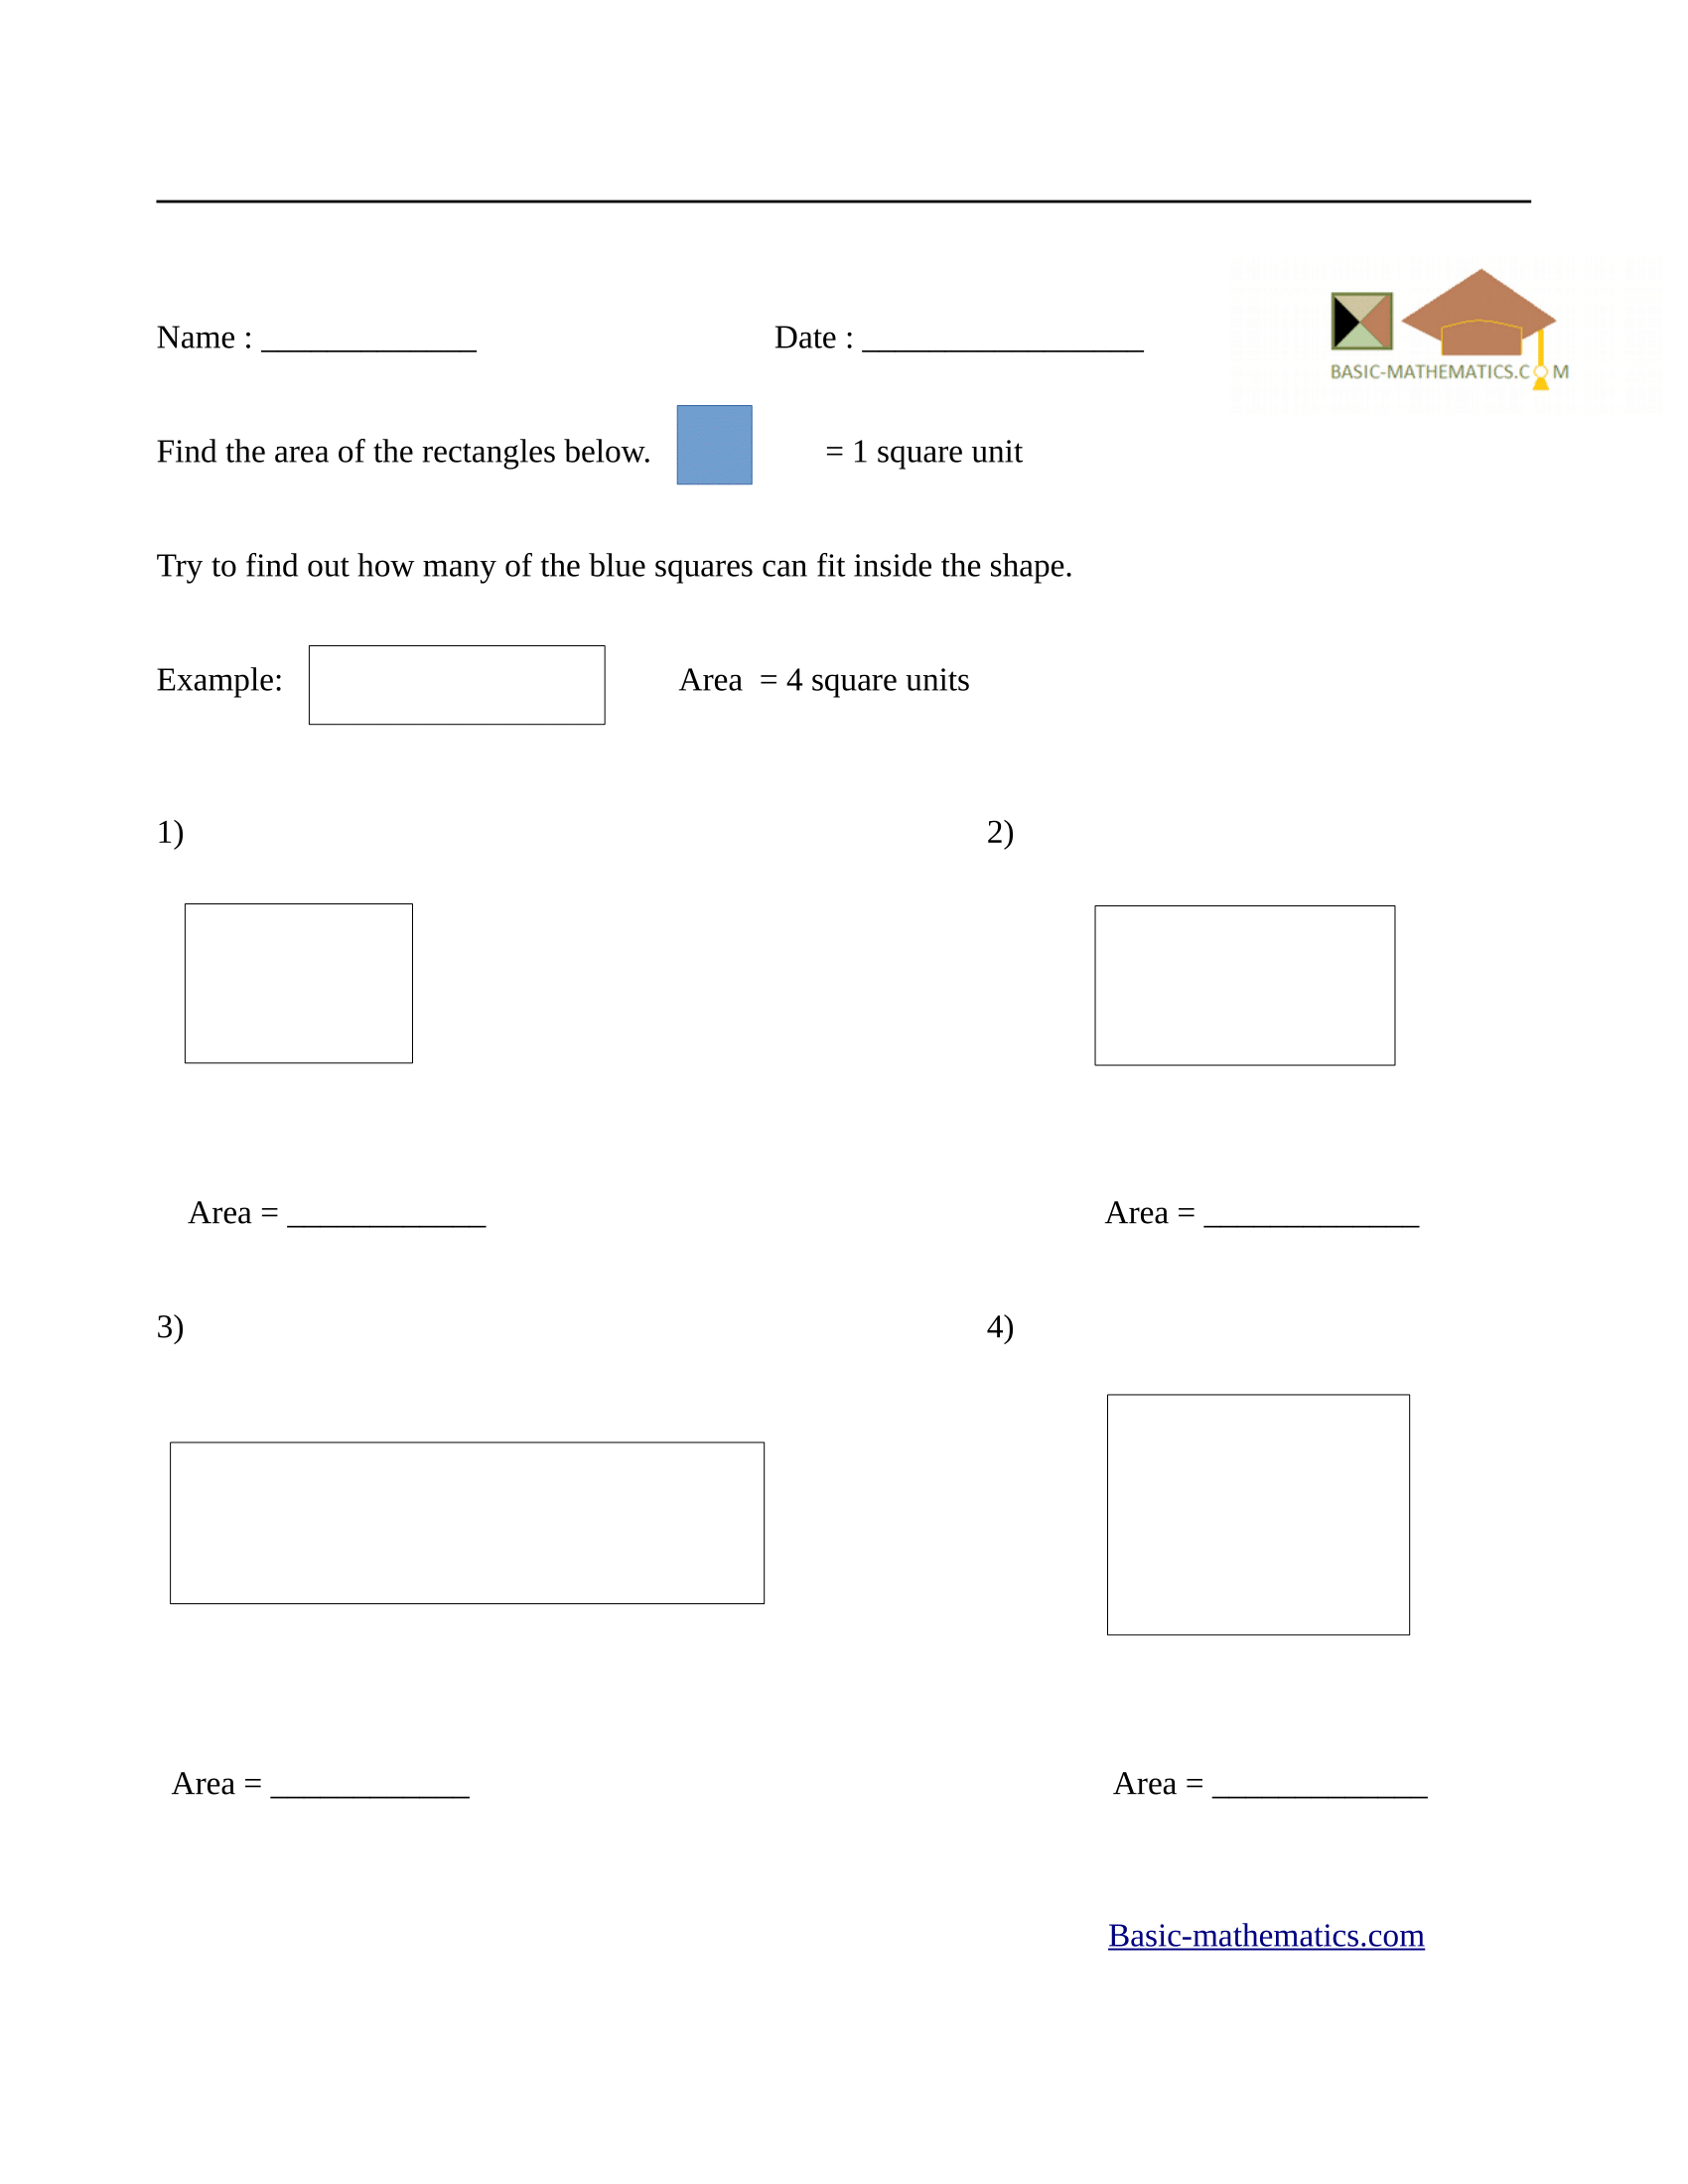 Area of rectangles worksheet 2